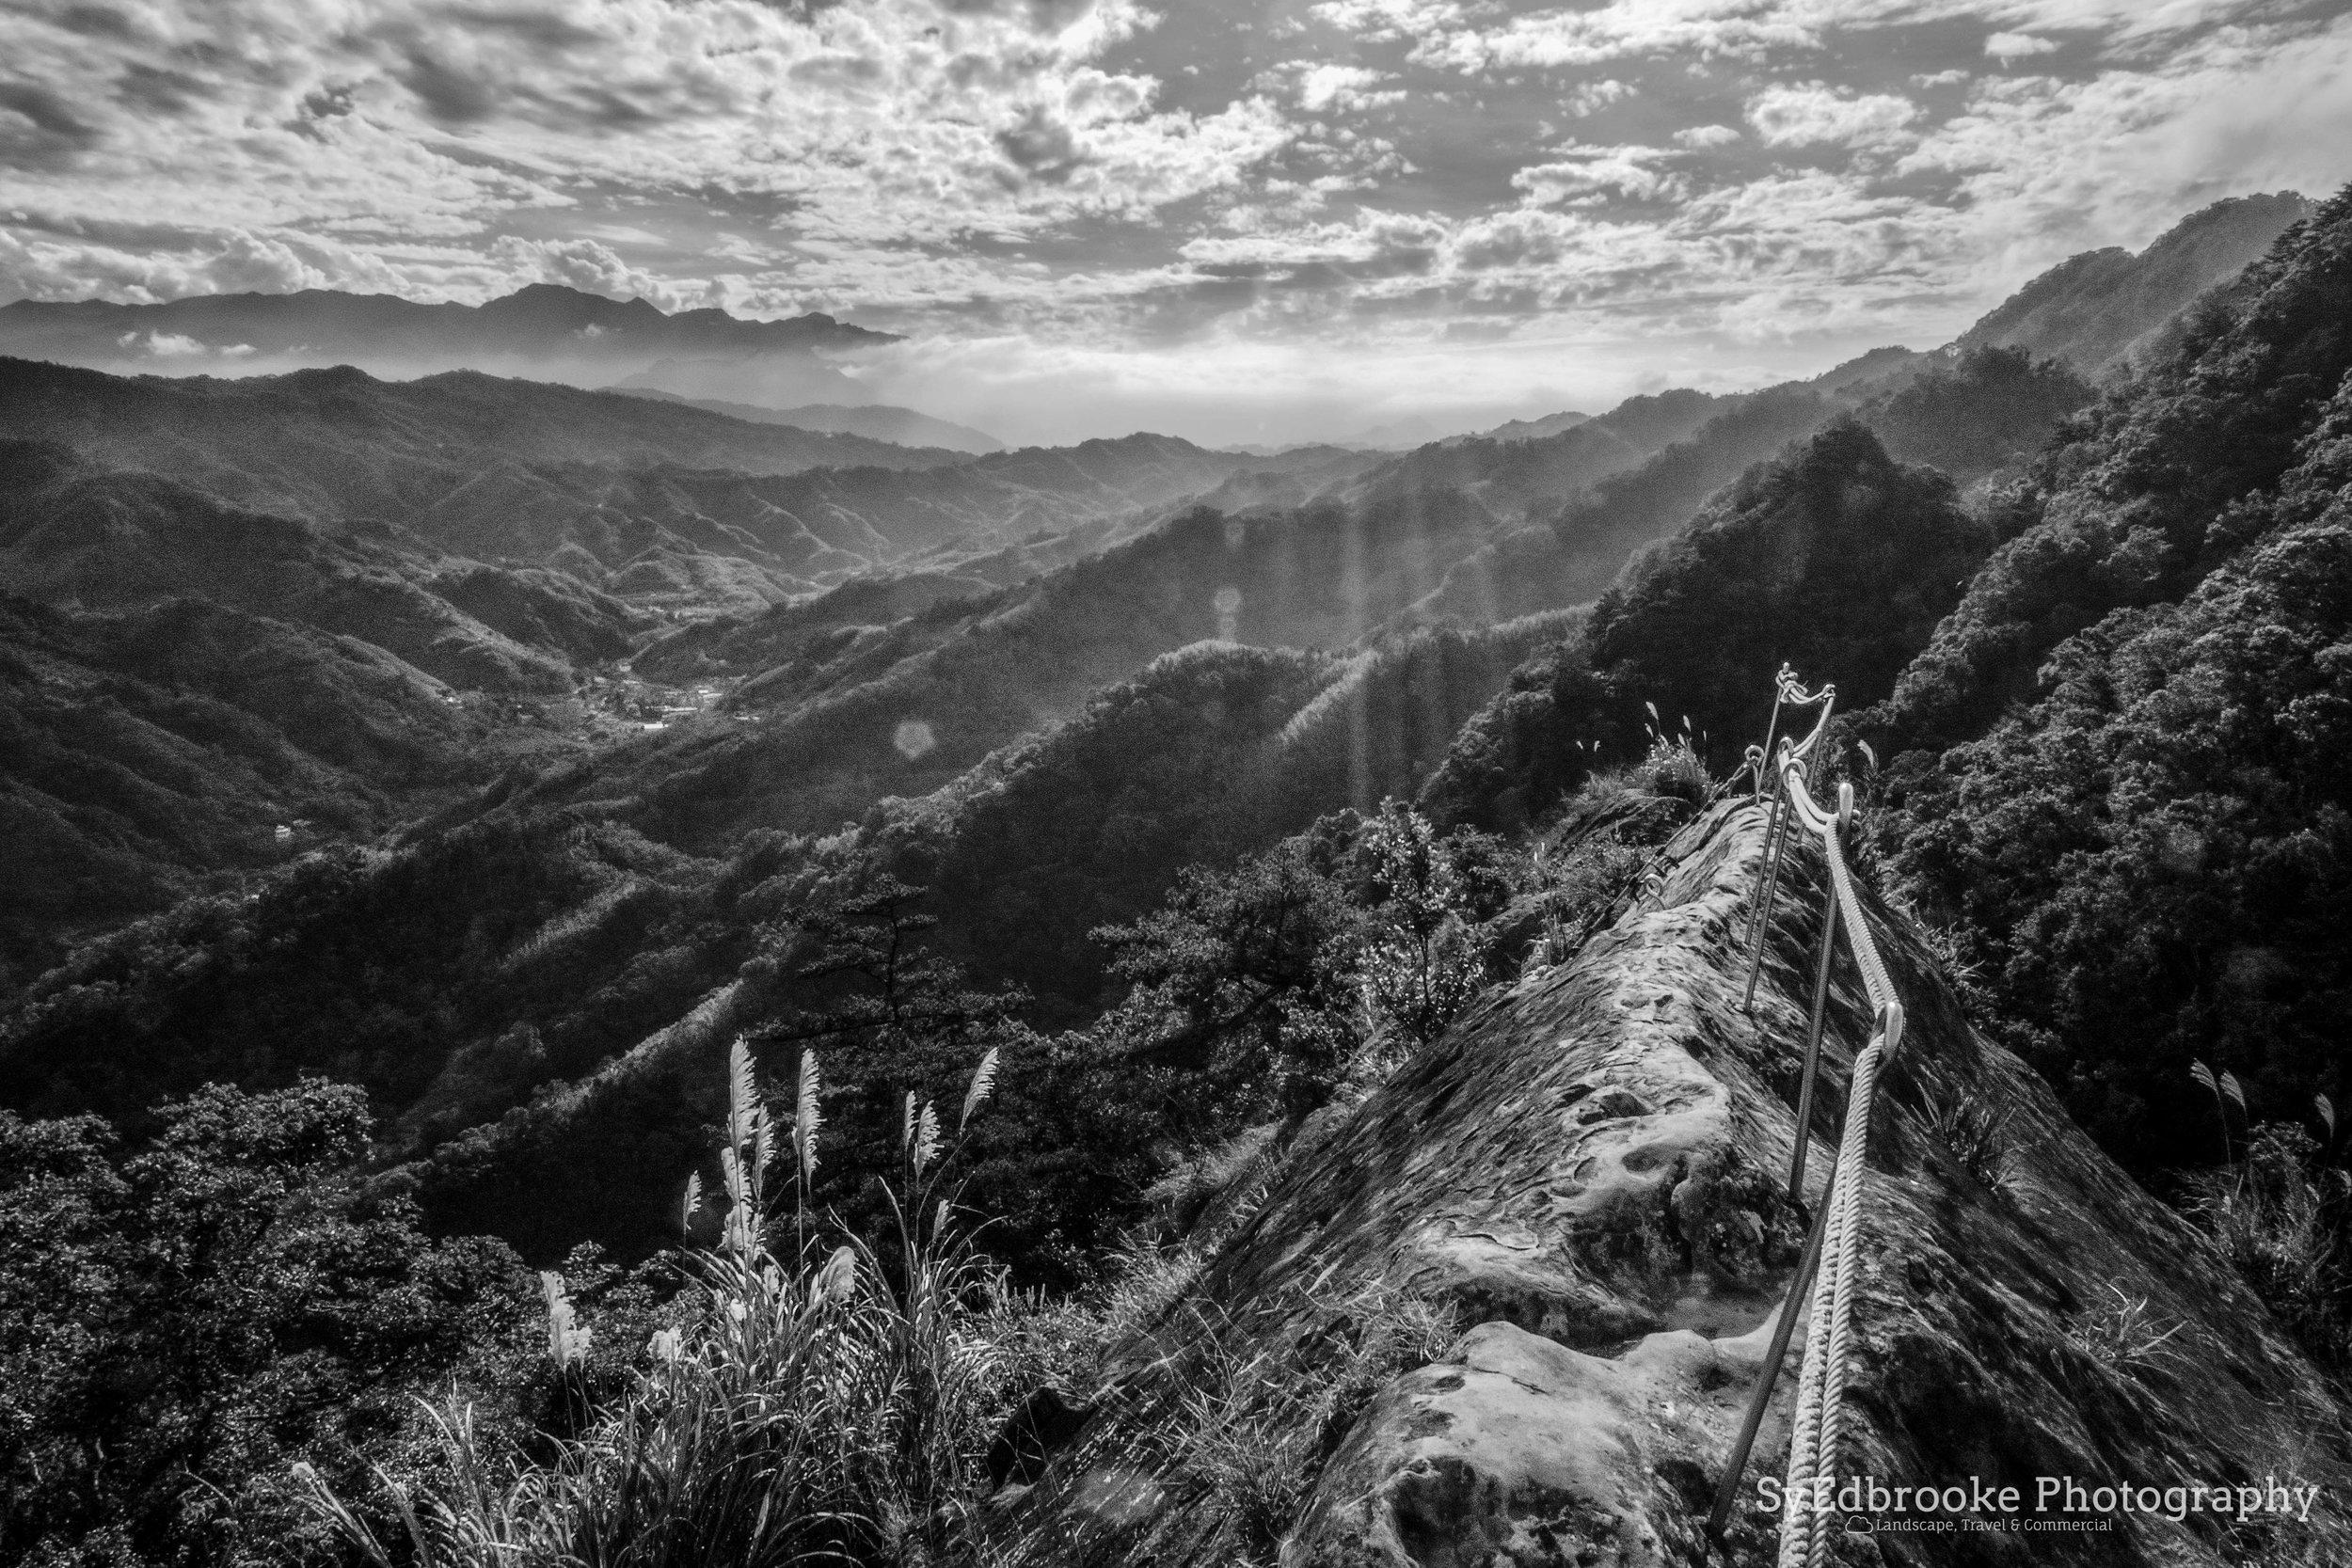 On the edge of the main hike, after climbing up. f22, ISO 1000, 1/80, 24mm